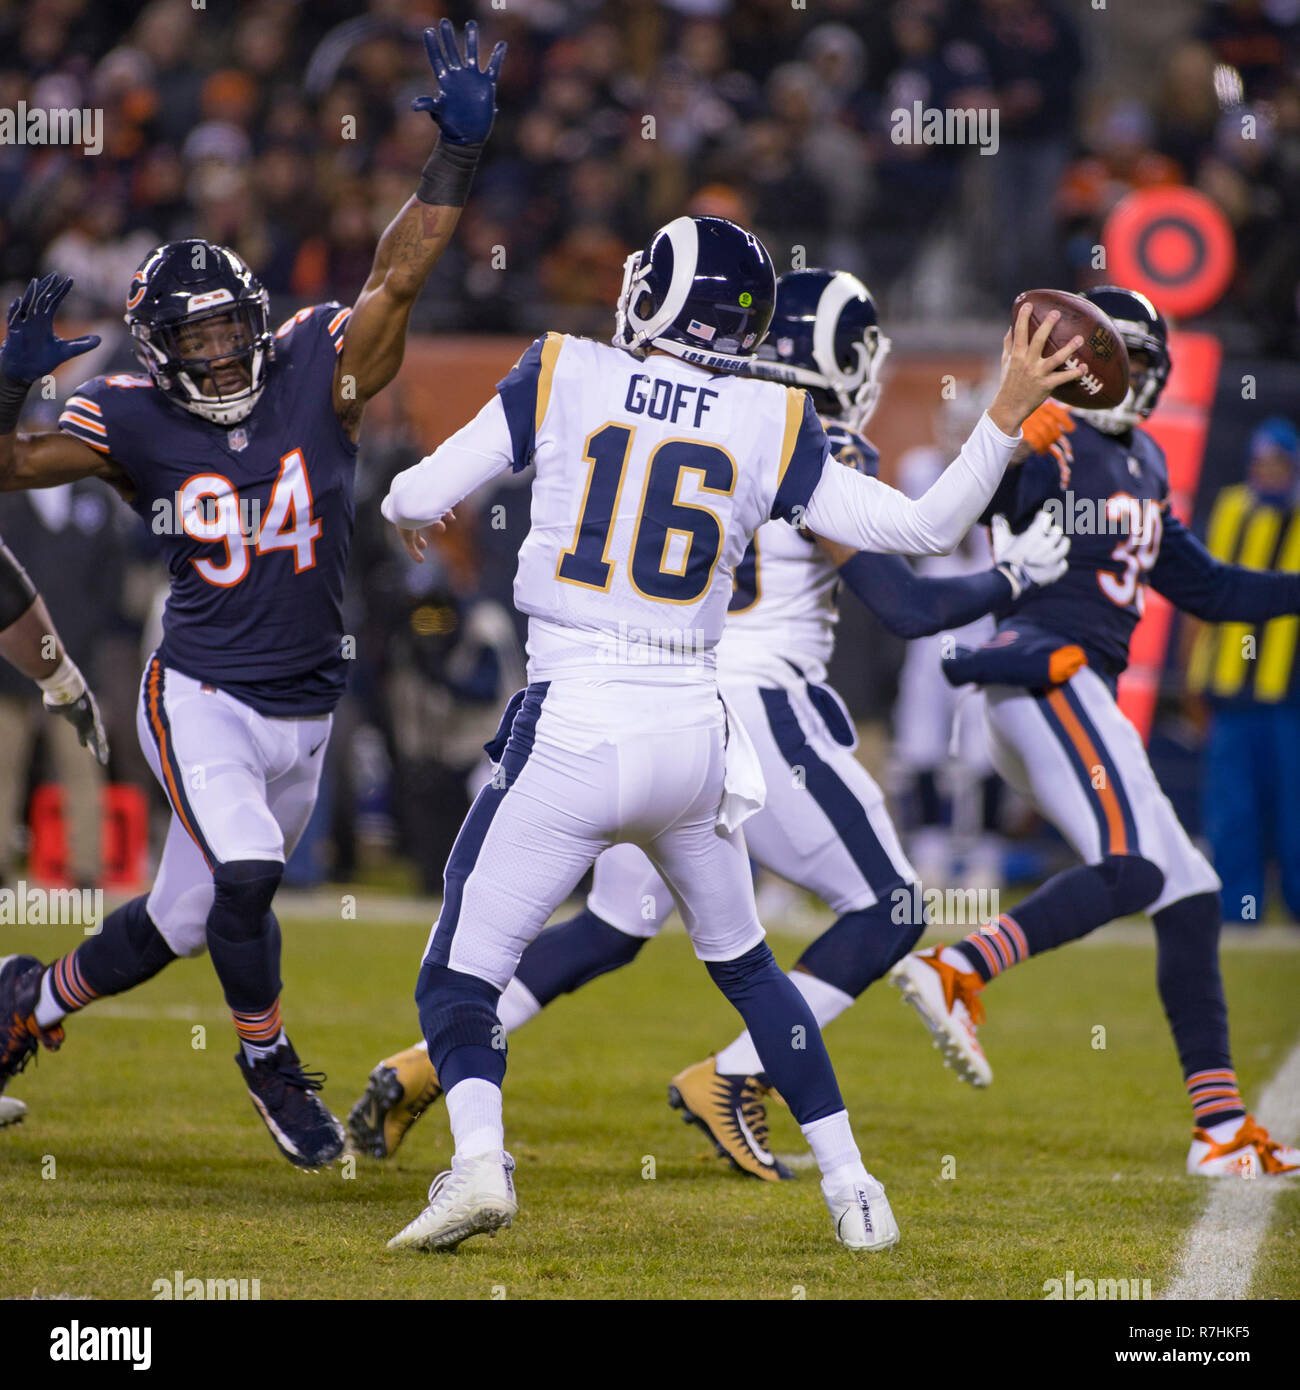 0d5e0025f45 Bears #94 Leonard Floyd puts pressure on Rams Quarterback #16 Jared Goff  during the NFL Game between the Los Angeles Rams and Chicago Bears at ...